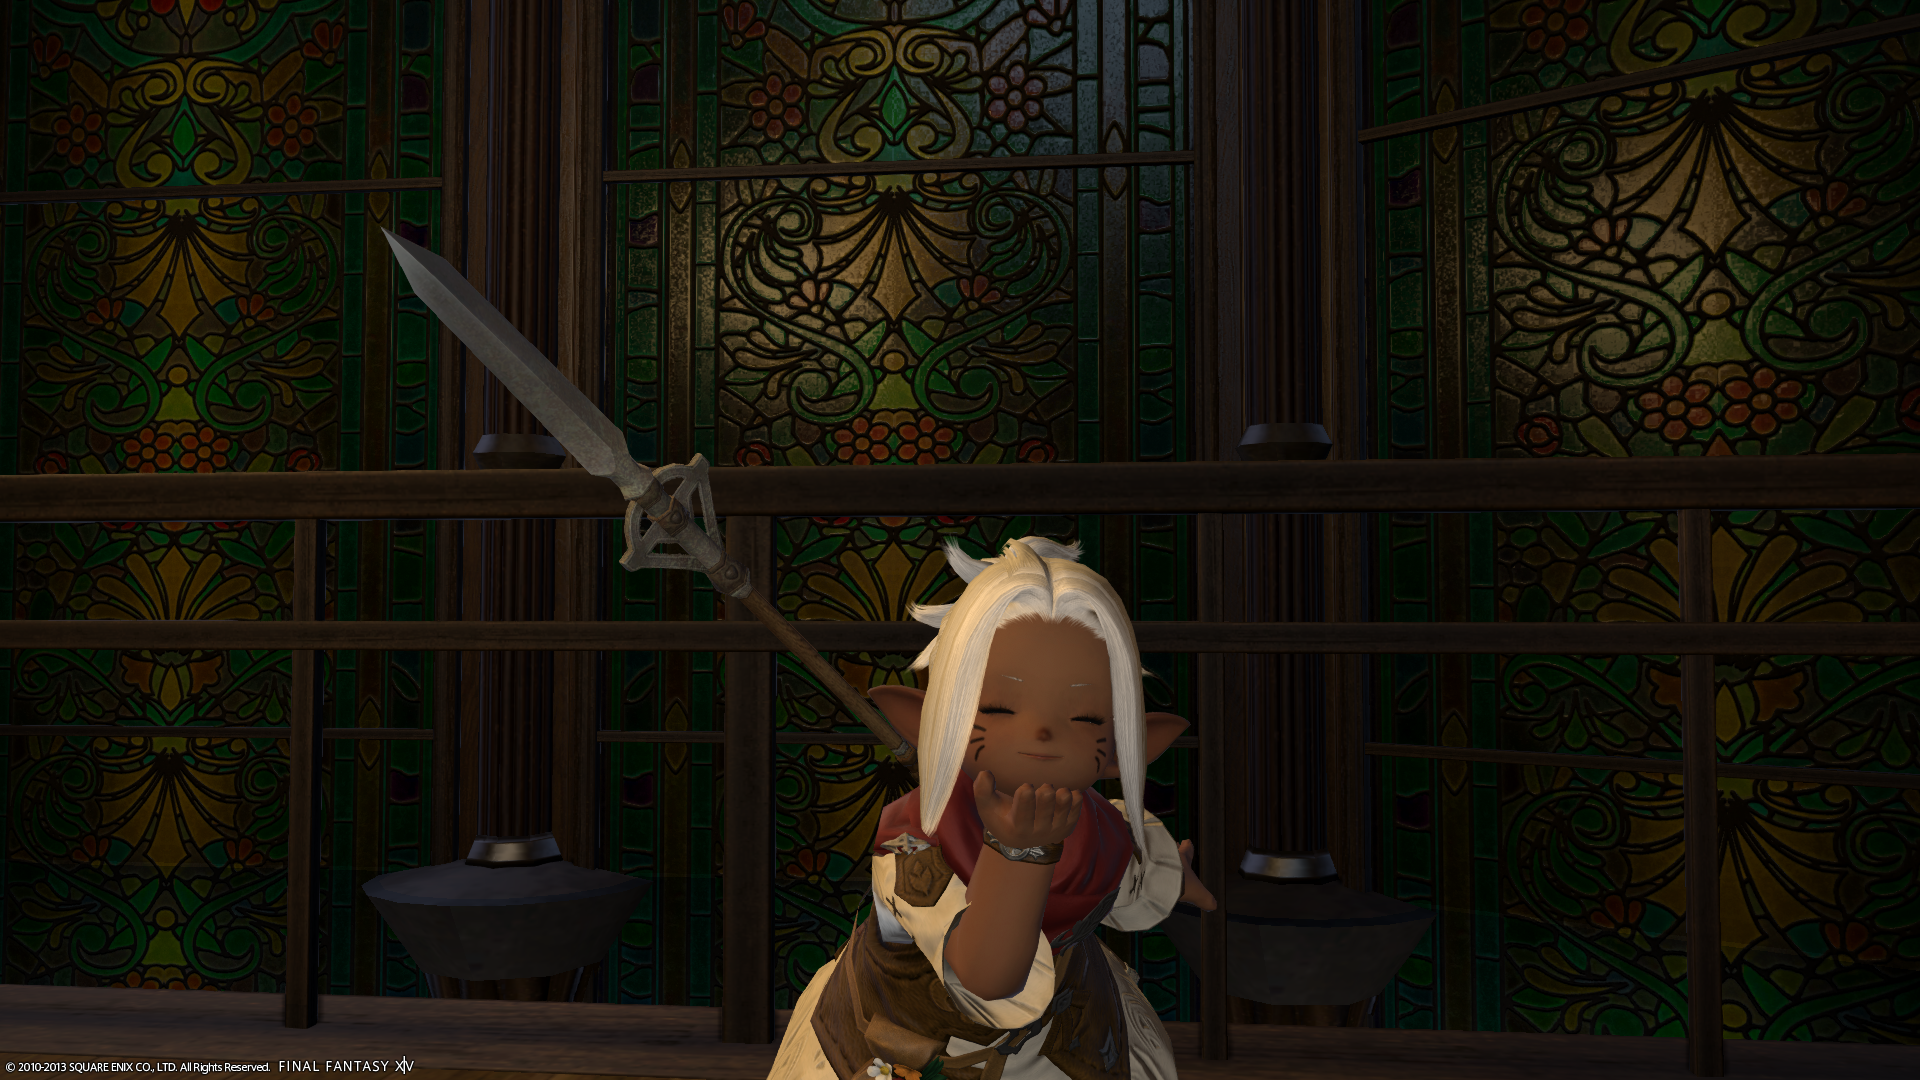 tisi ffxiv cute fantastic awesome picture this comment cheesecake phase contest wanted just